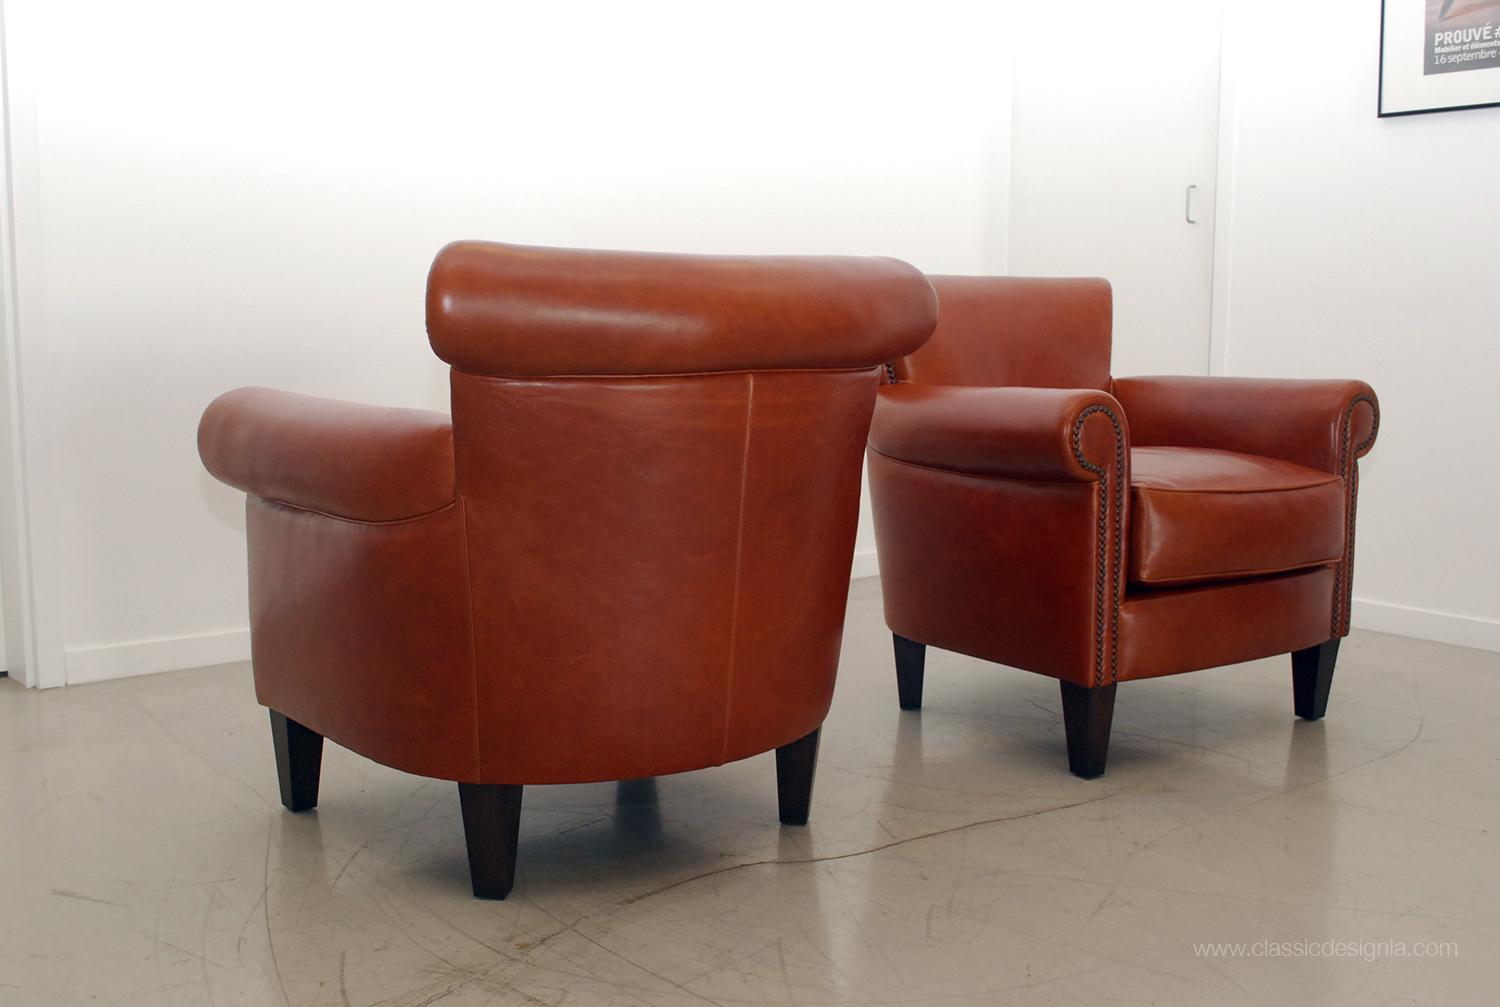 classic design: Classic Leather Club Chairs